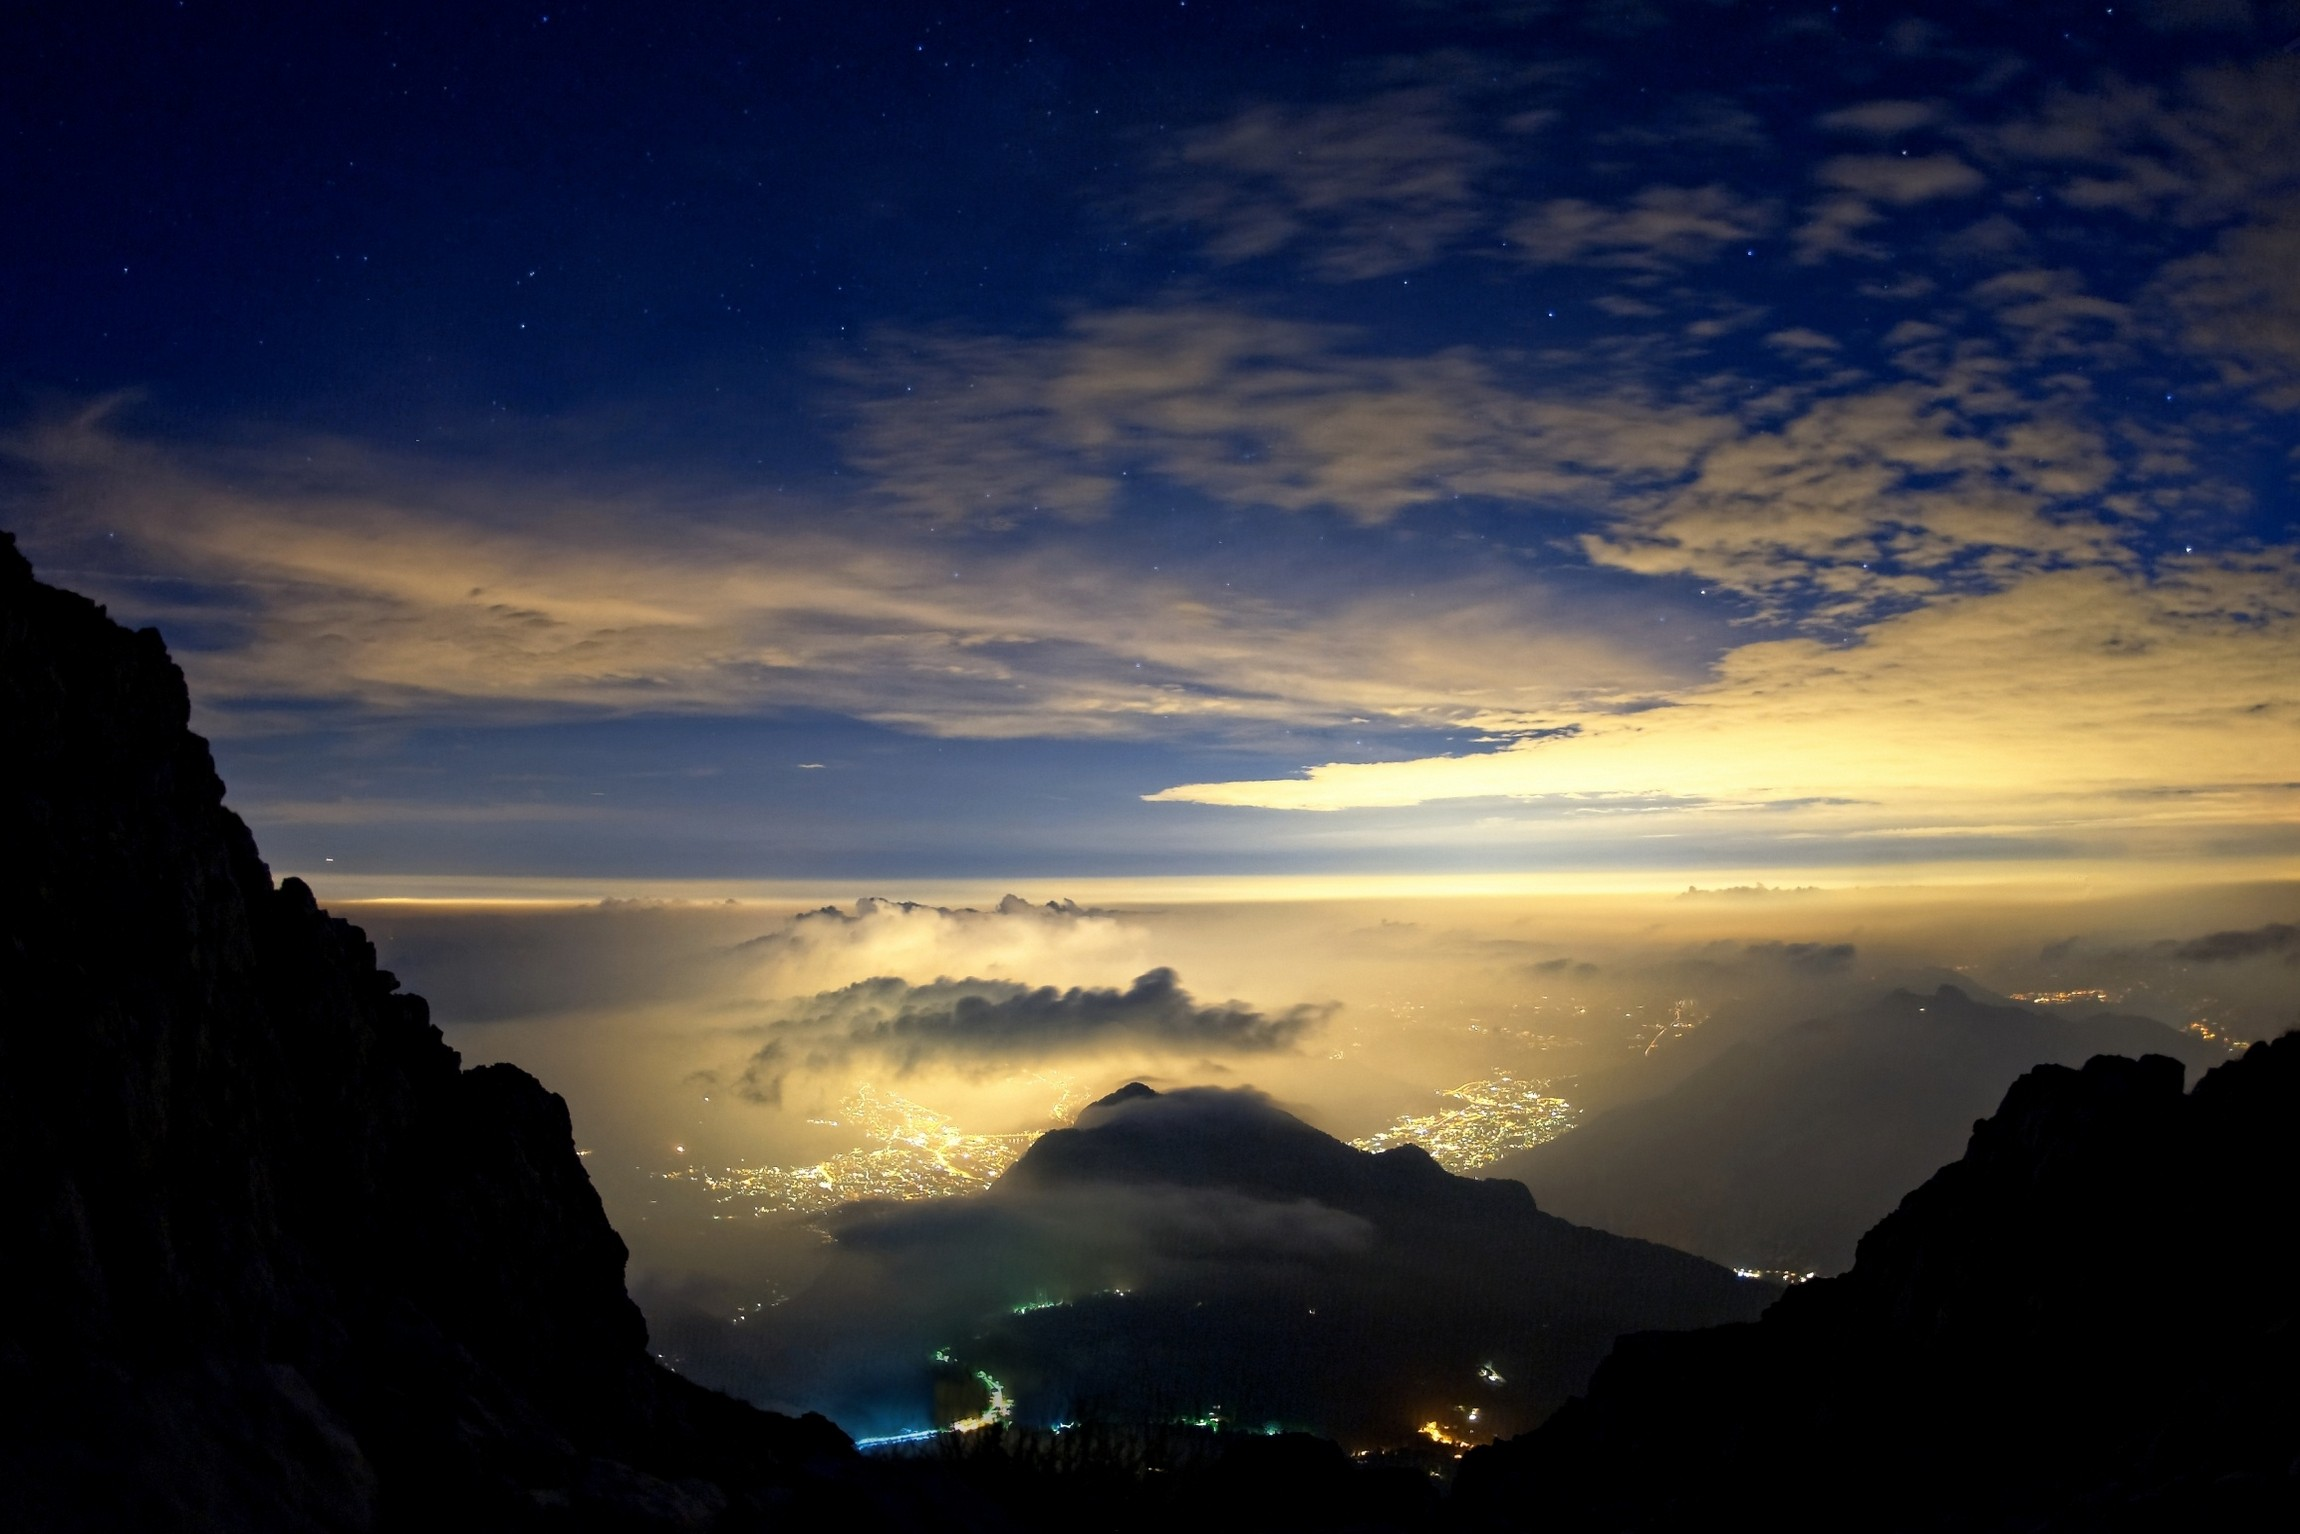 mist sky evening valley landscape clouds stars city italy nature mountains lights